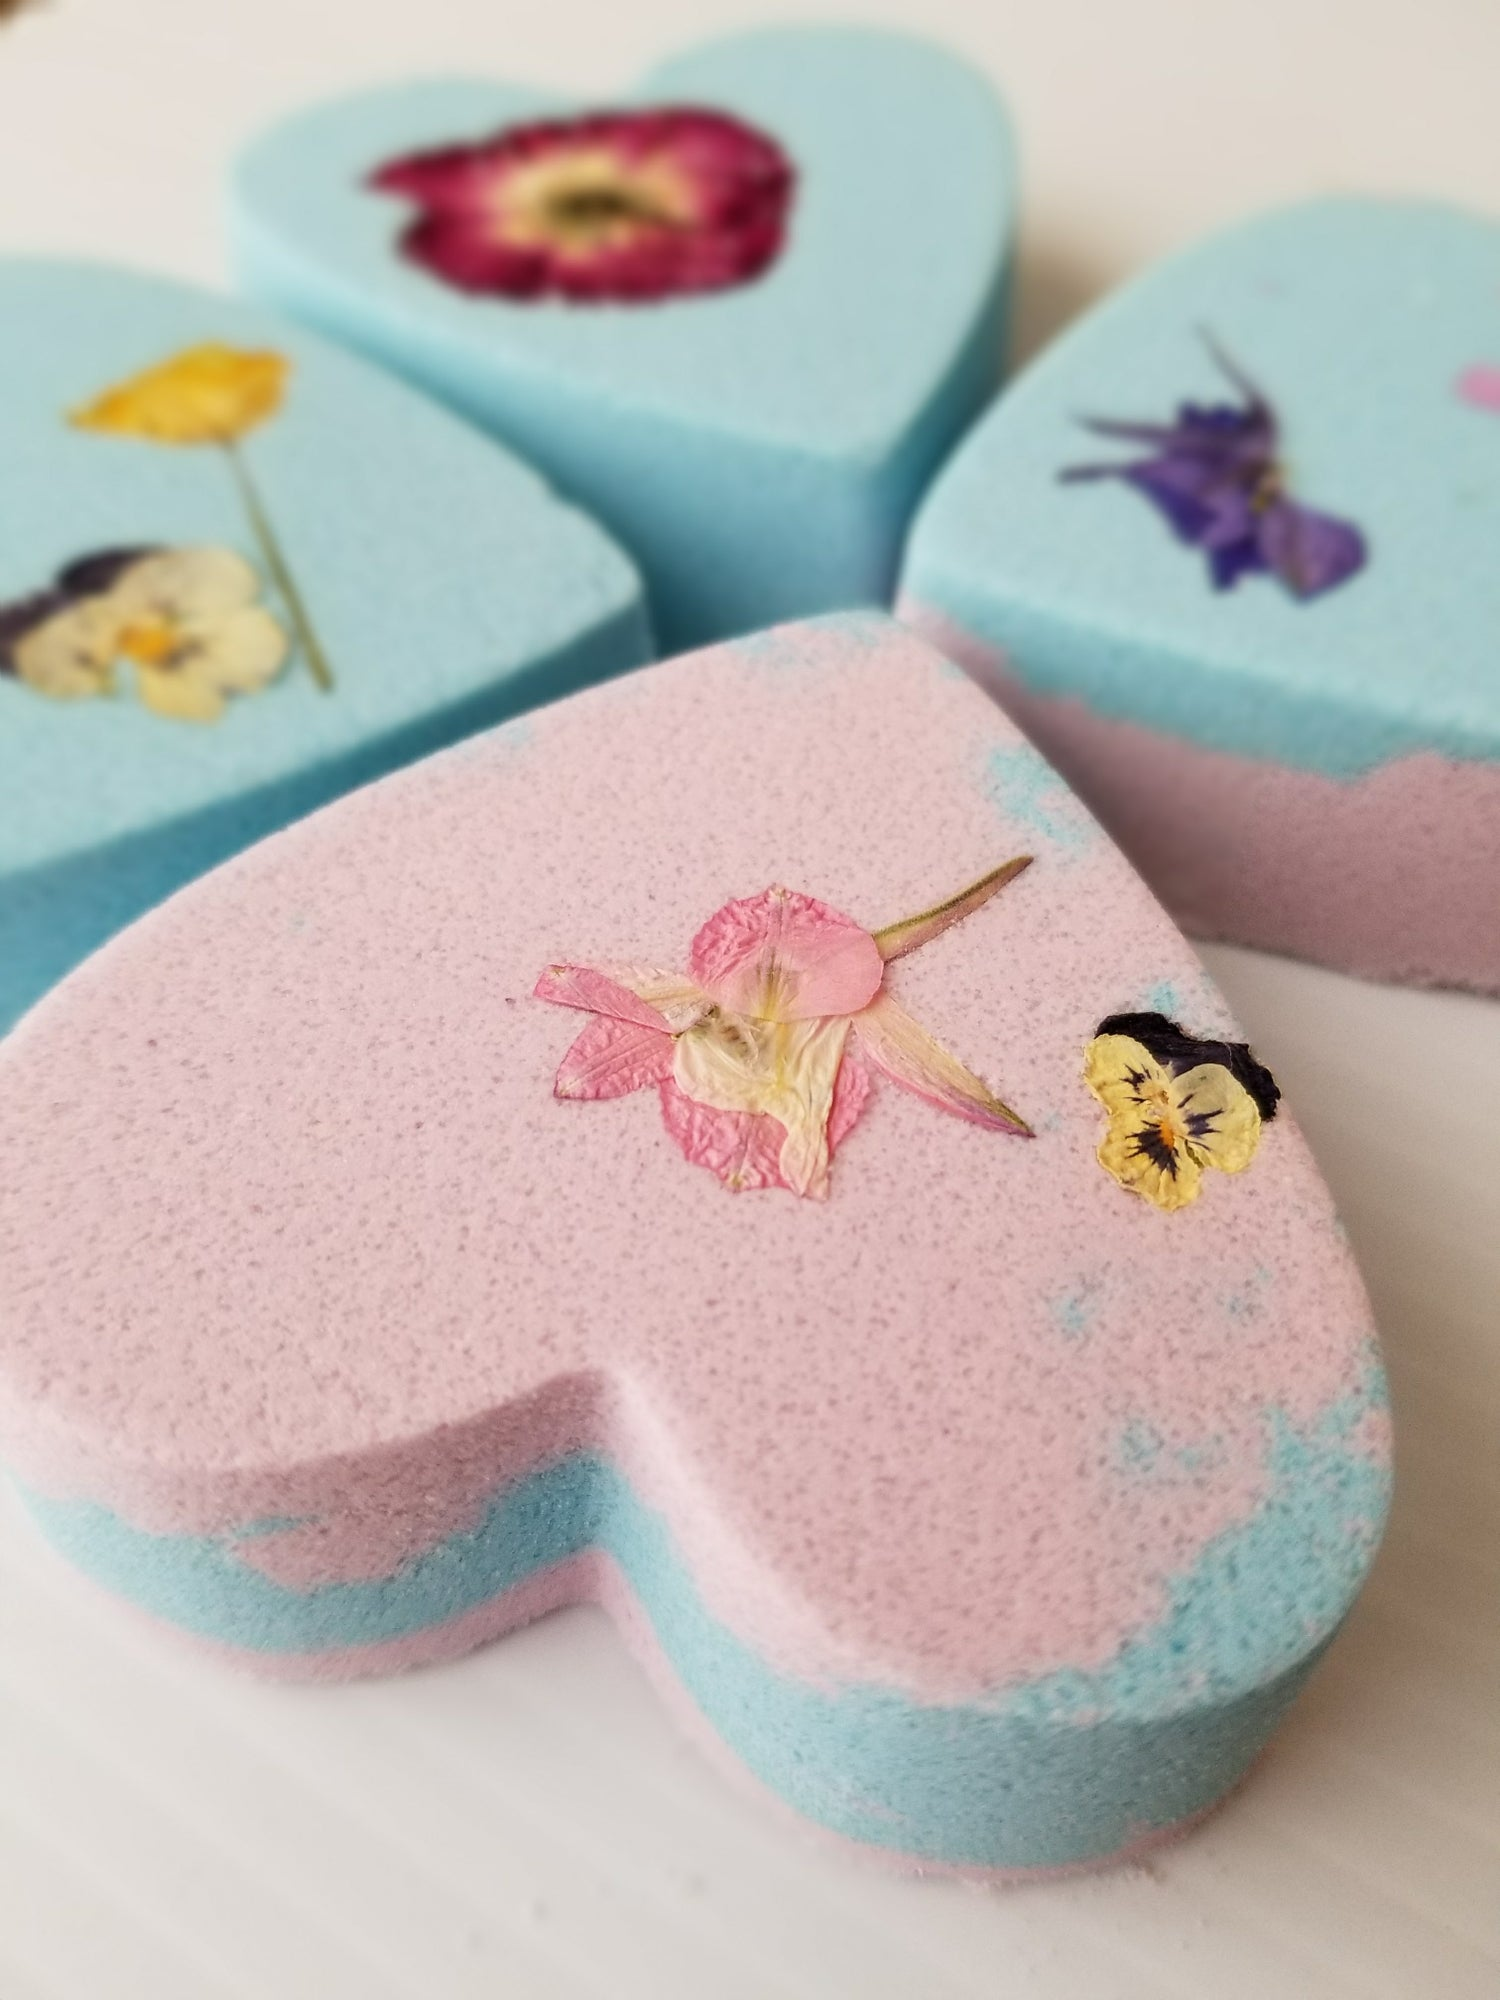 Image of Foamy Bath Bombs